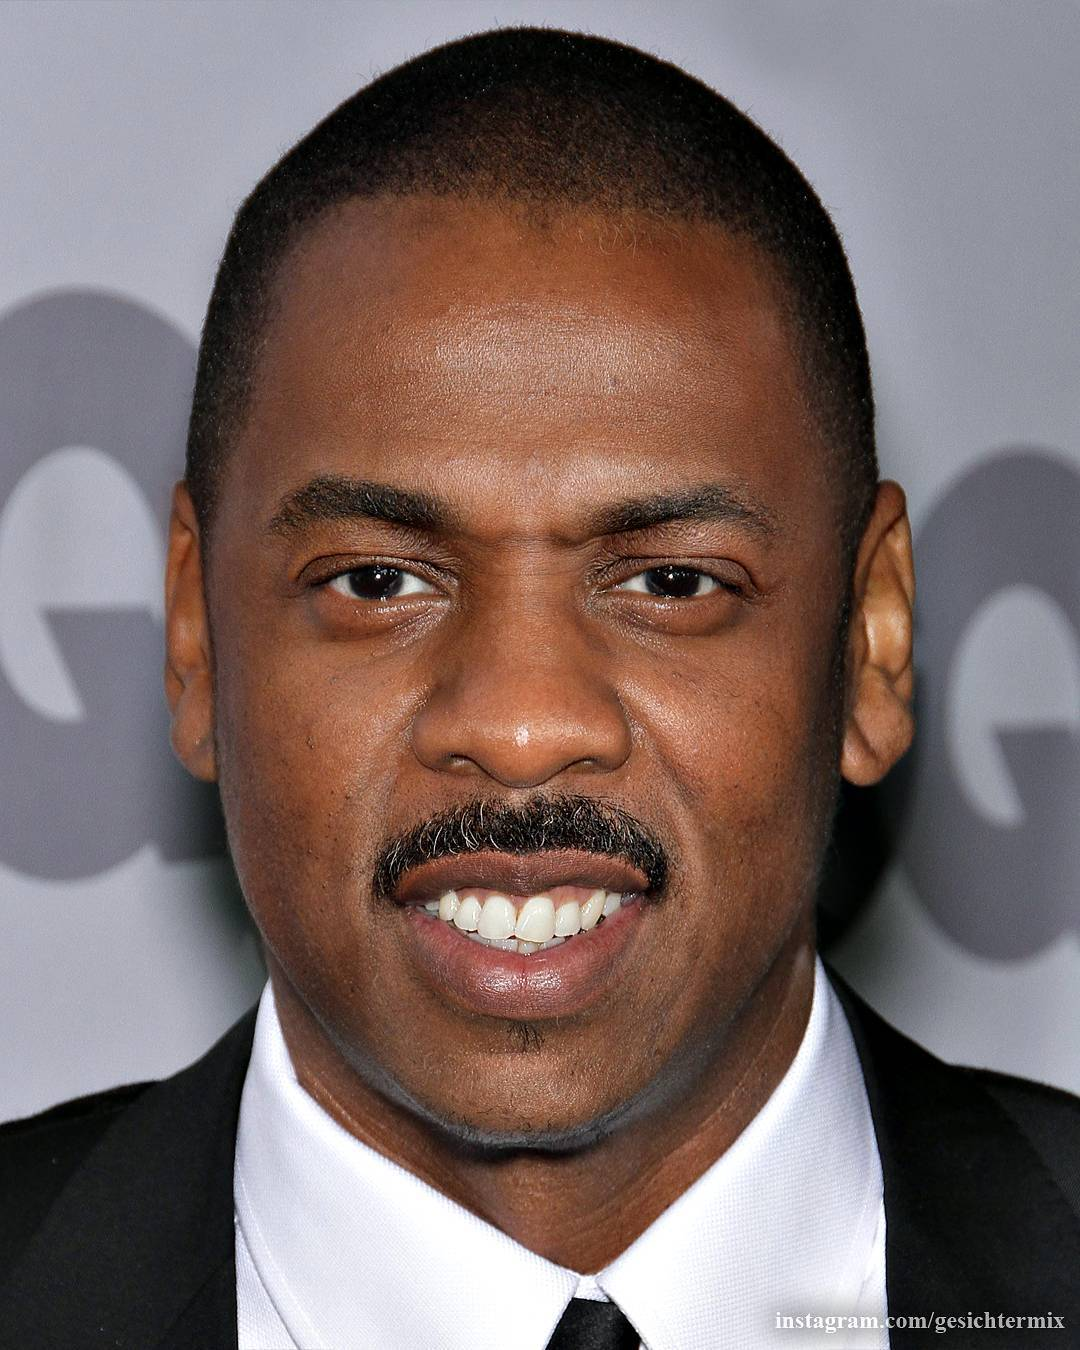 Photoshop Guru Fuses Celebrity Faces Together - Idris Elba and Jay Z